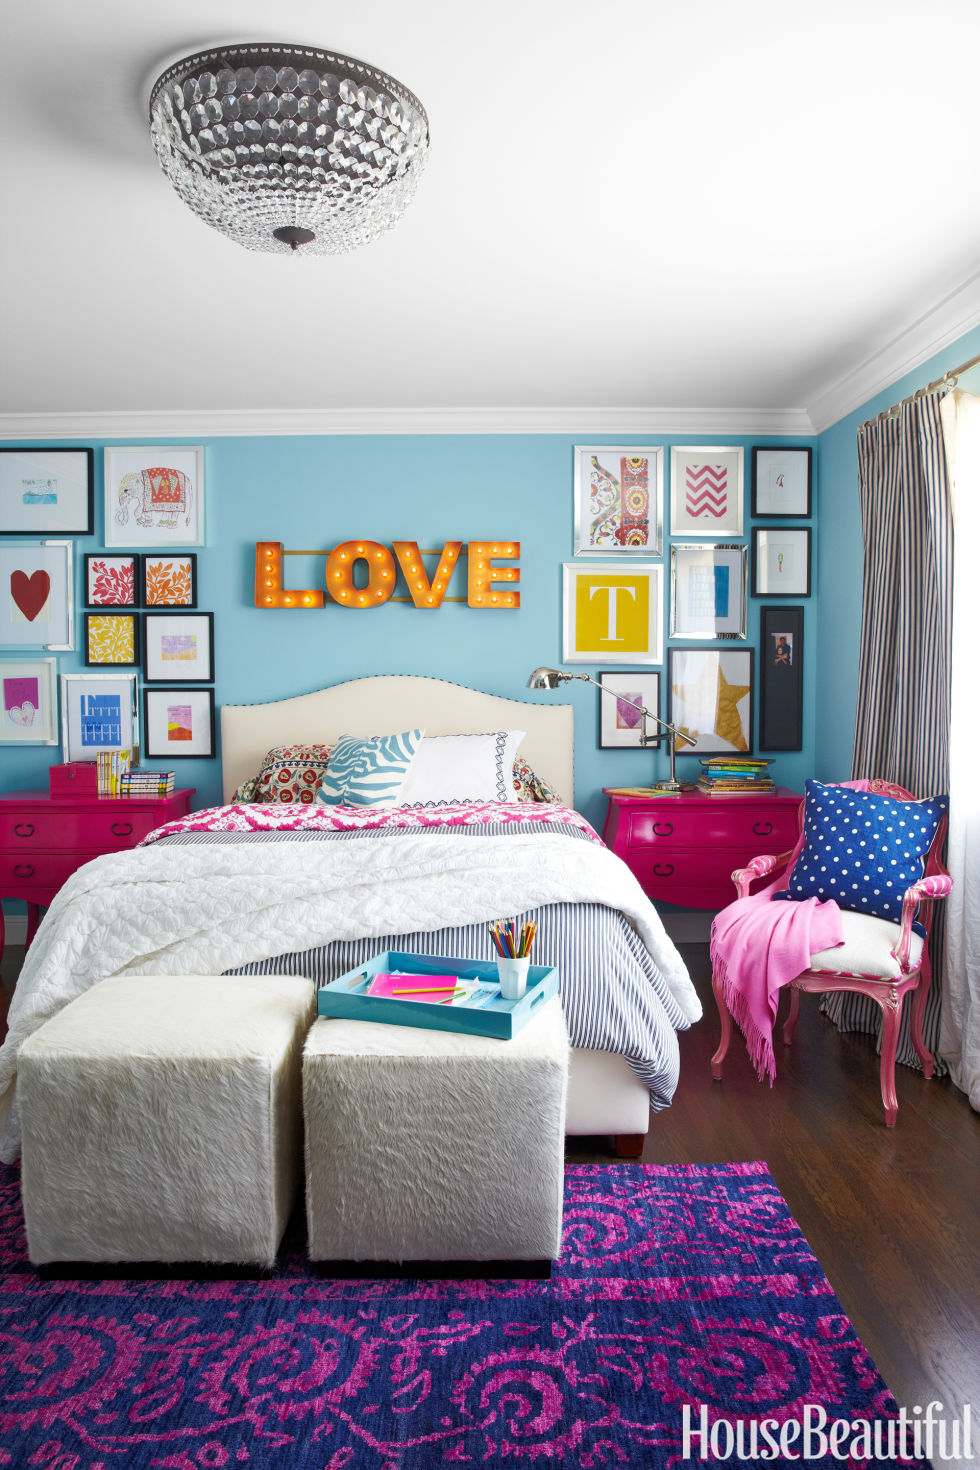 12 Best Kids Room Paint Colors - Children\'s Bedroom Paint Shade Ideas